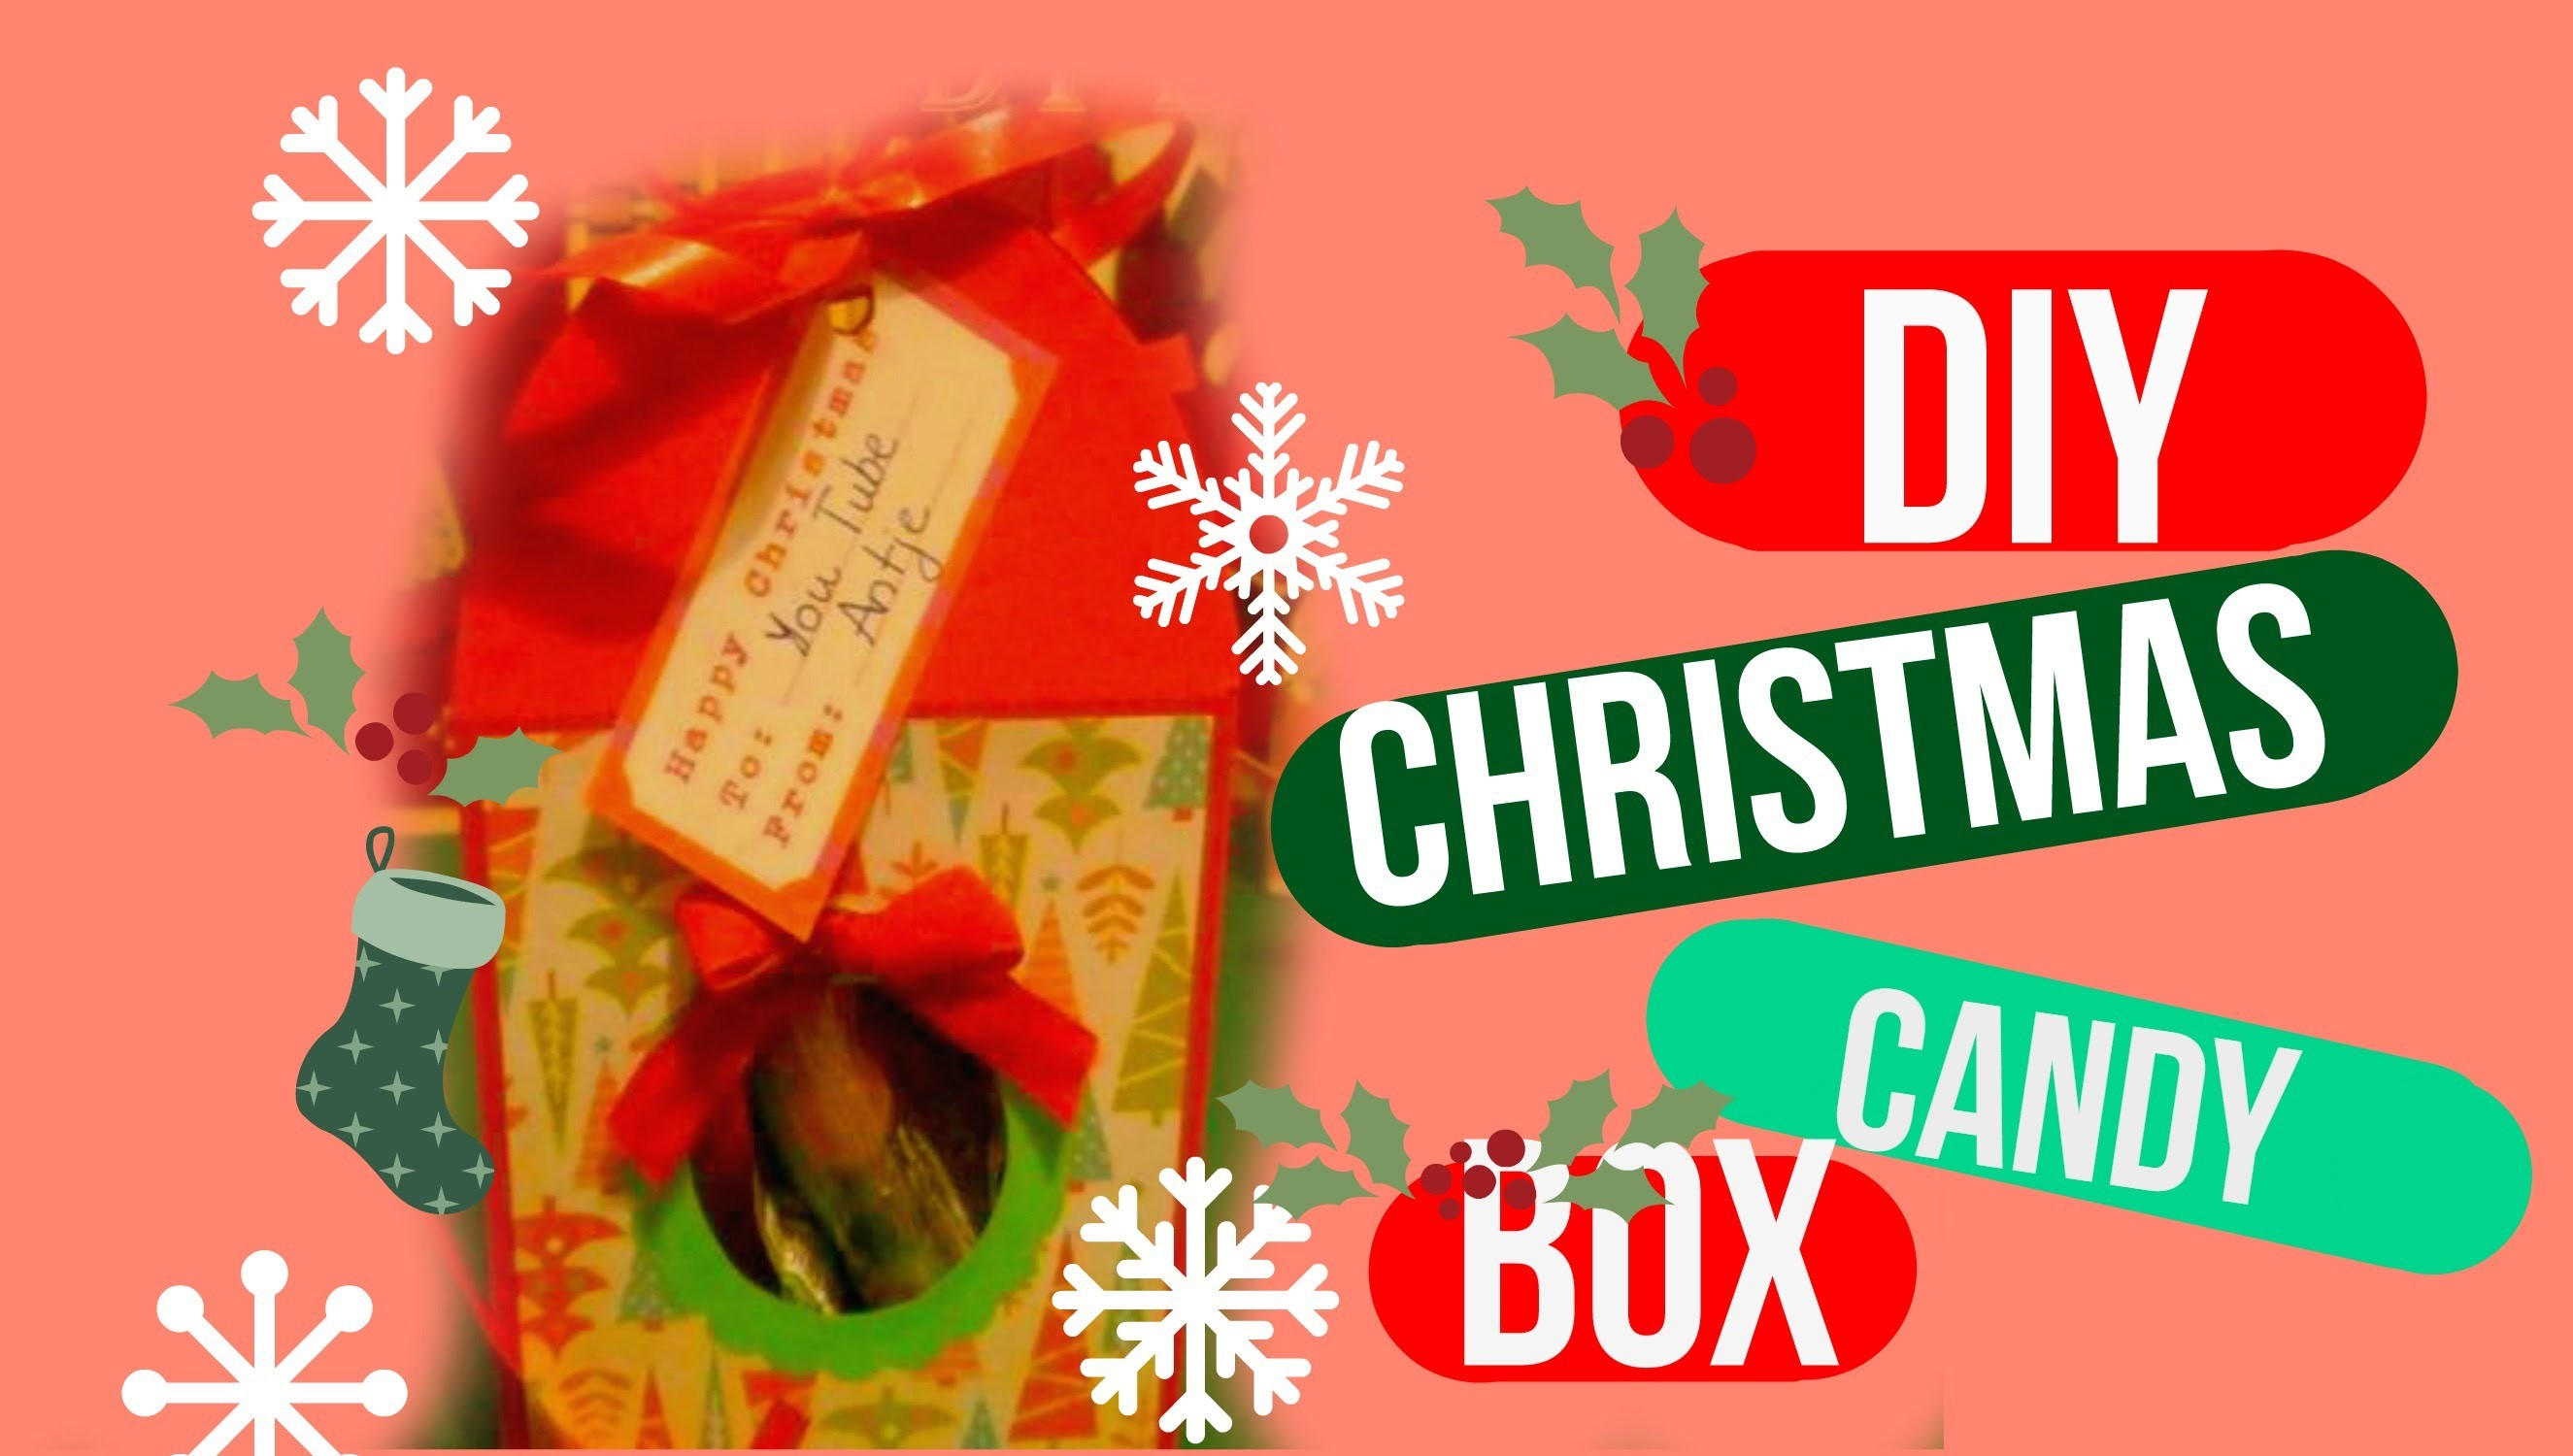 Last minute presents: Christmas candy box DIY